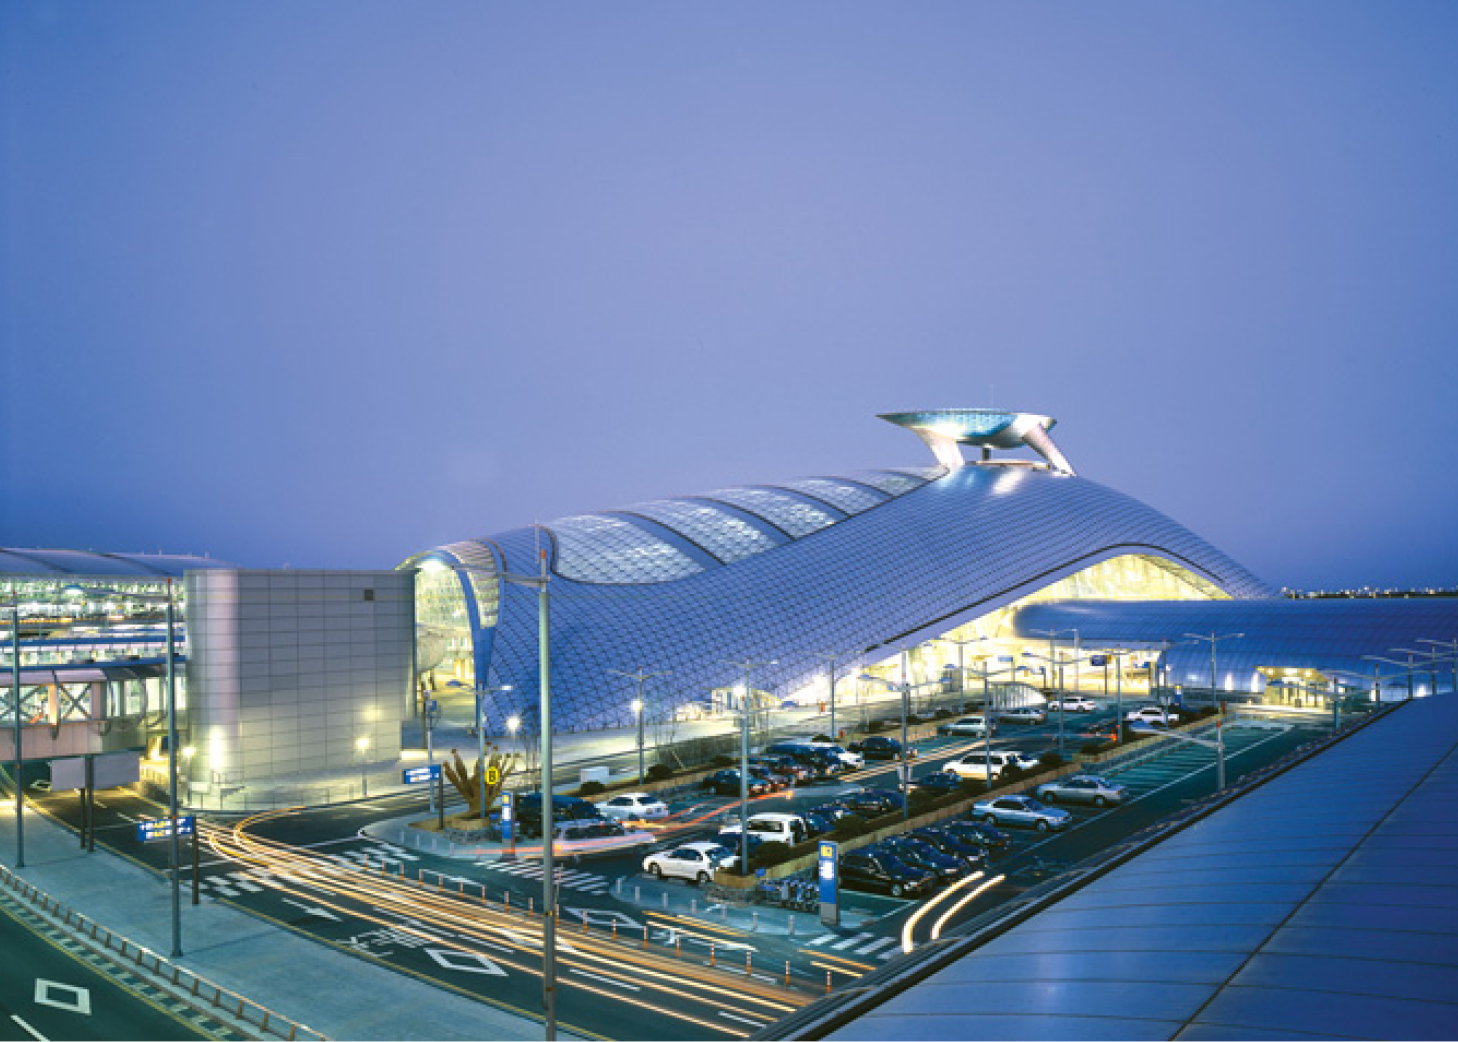 Asia-Pacific-South-Korea-Incheon-International-Airport-01